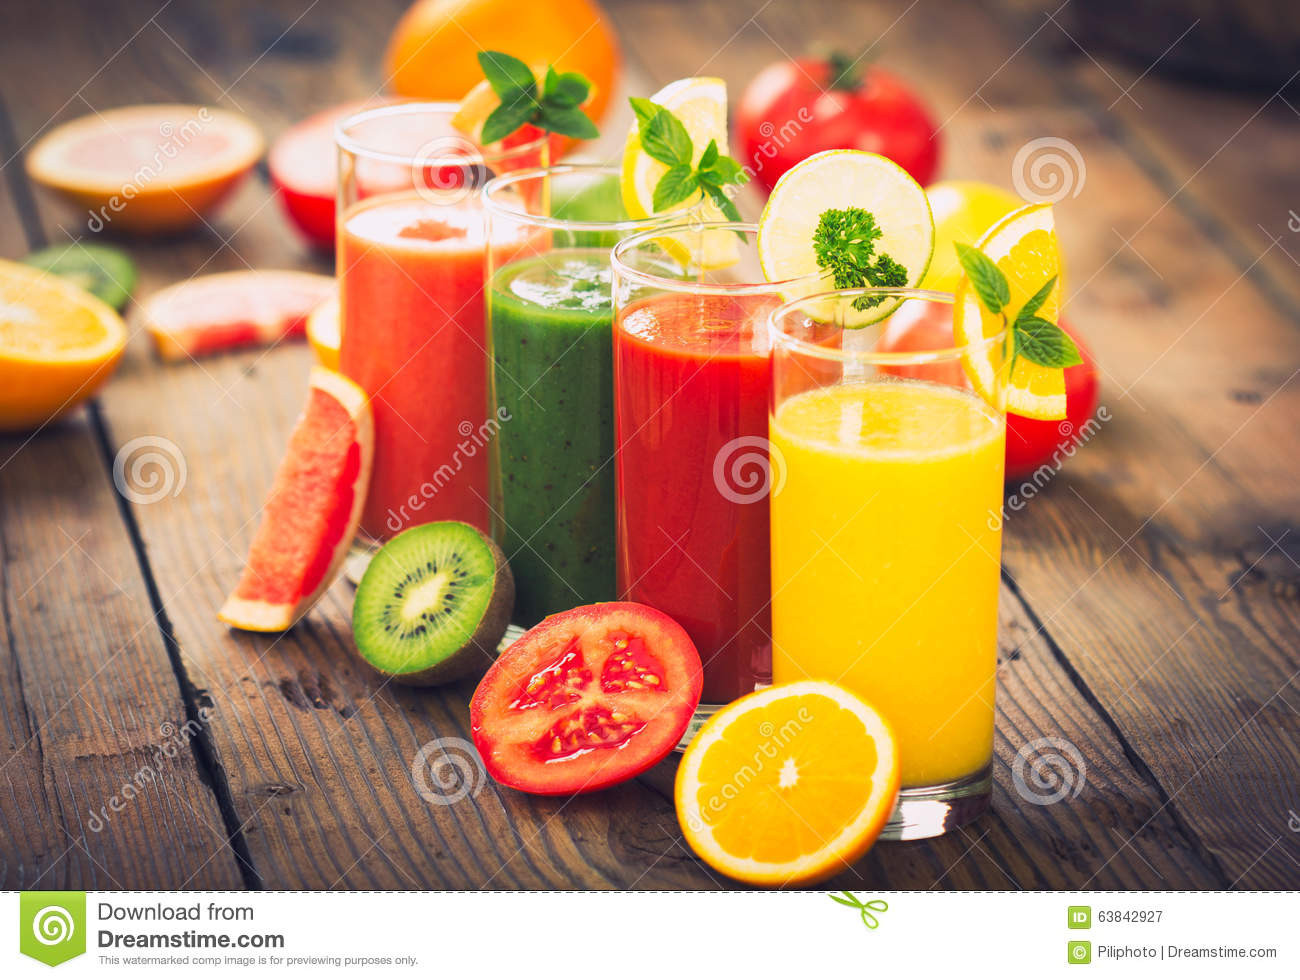 Healthy Fruit And Vegetable Smoothies  Healthy Fruit And Ve able Smoothies Stock Image